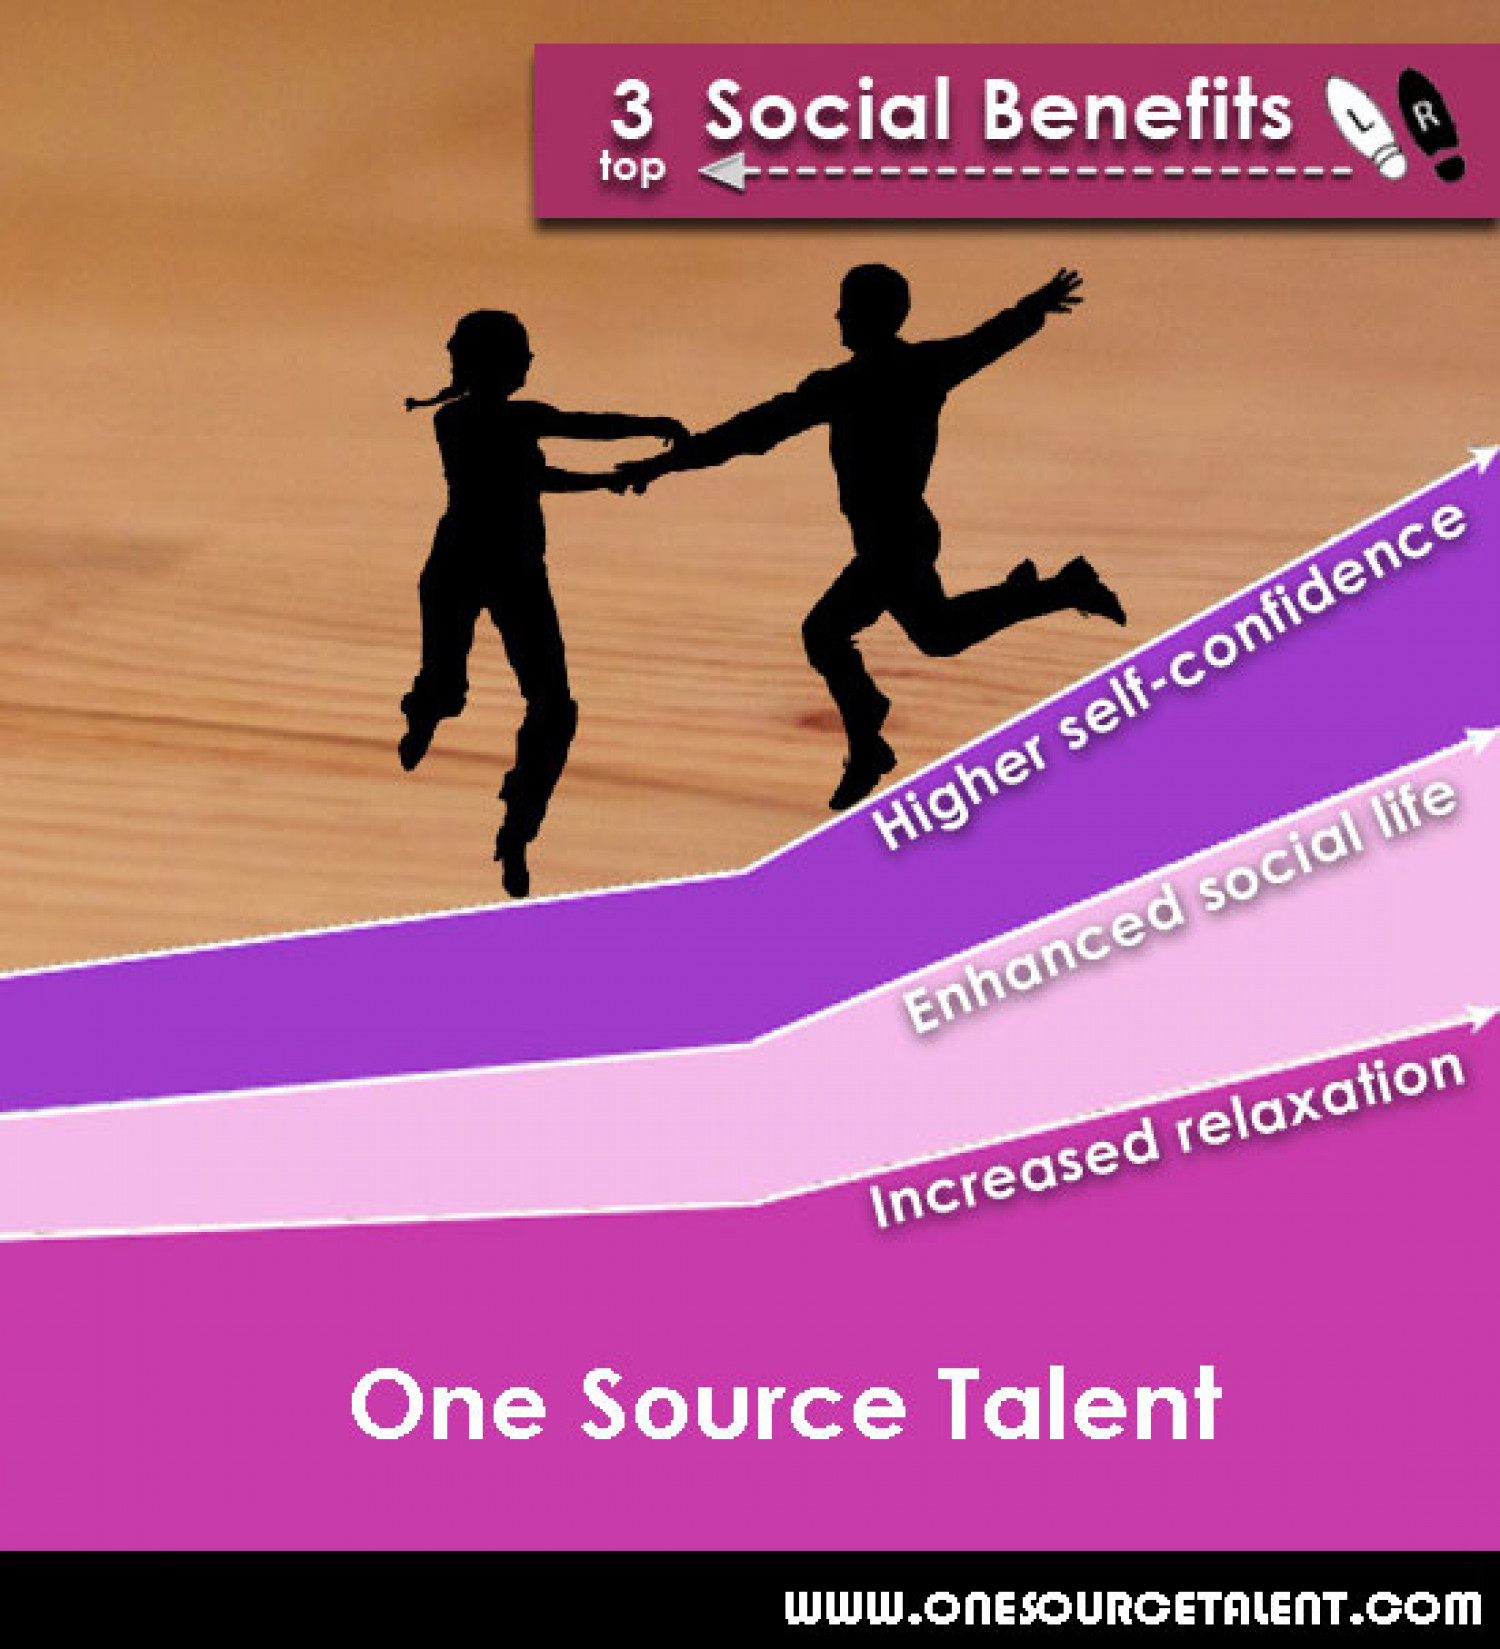 One Source Talent dancer success statistics Infographic